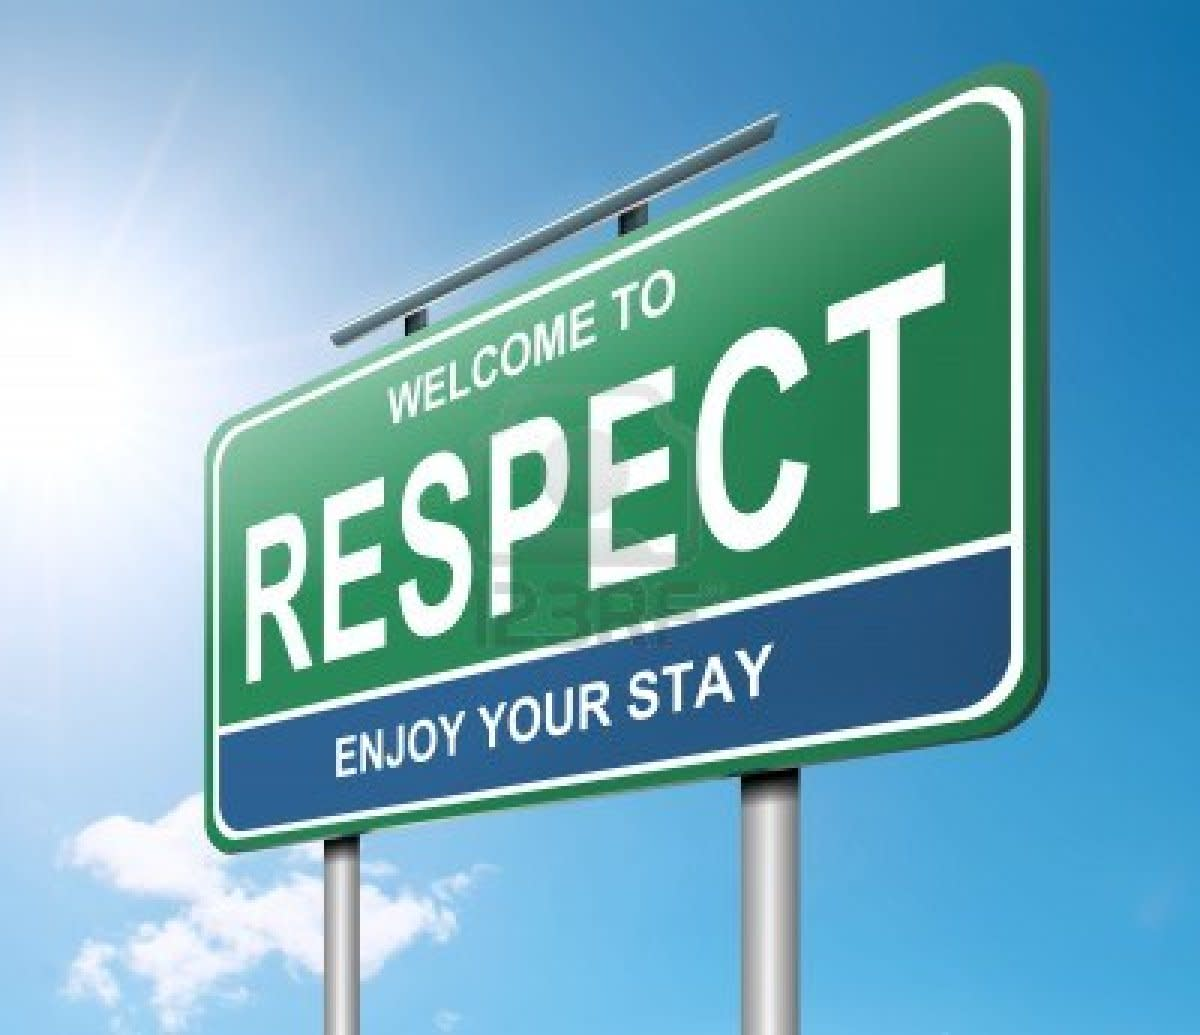 Inspiring Quotes on The Importance of Respect